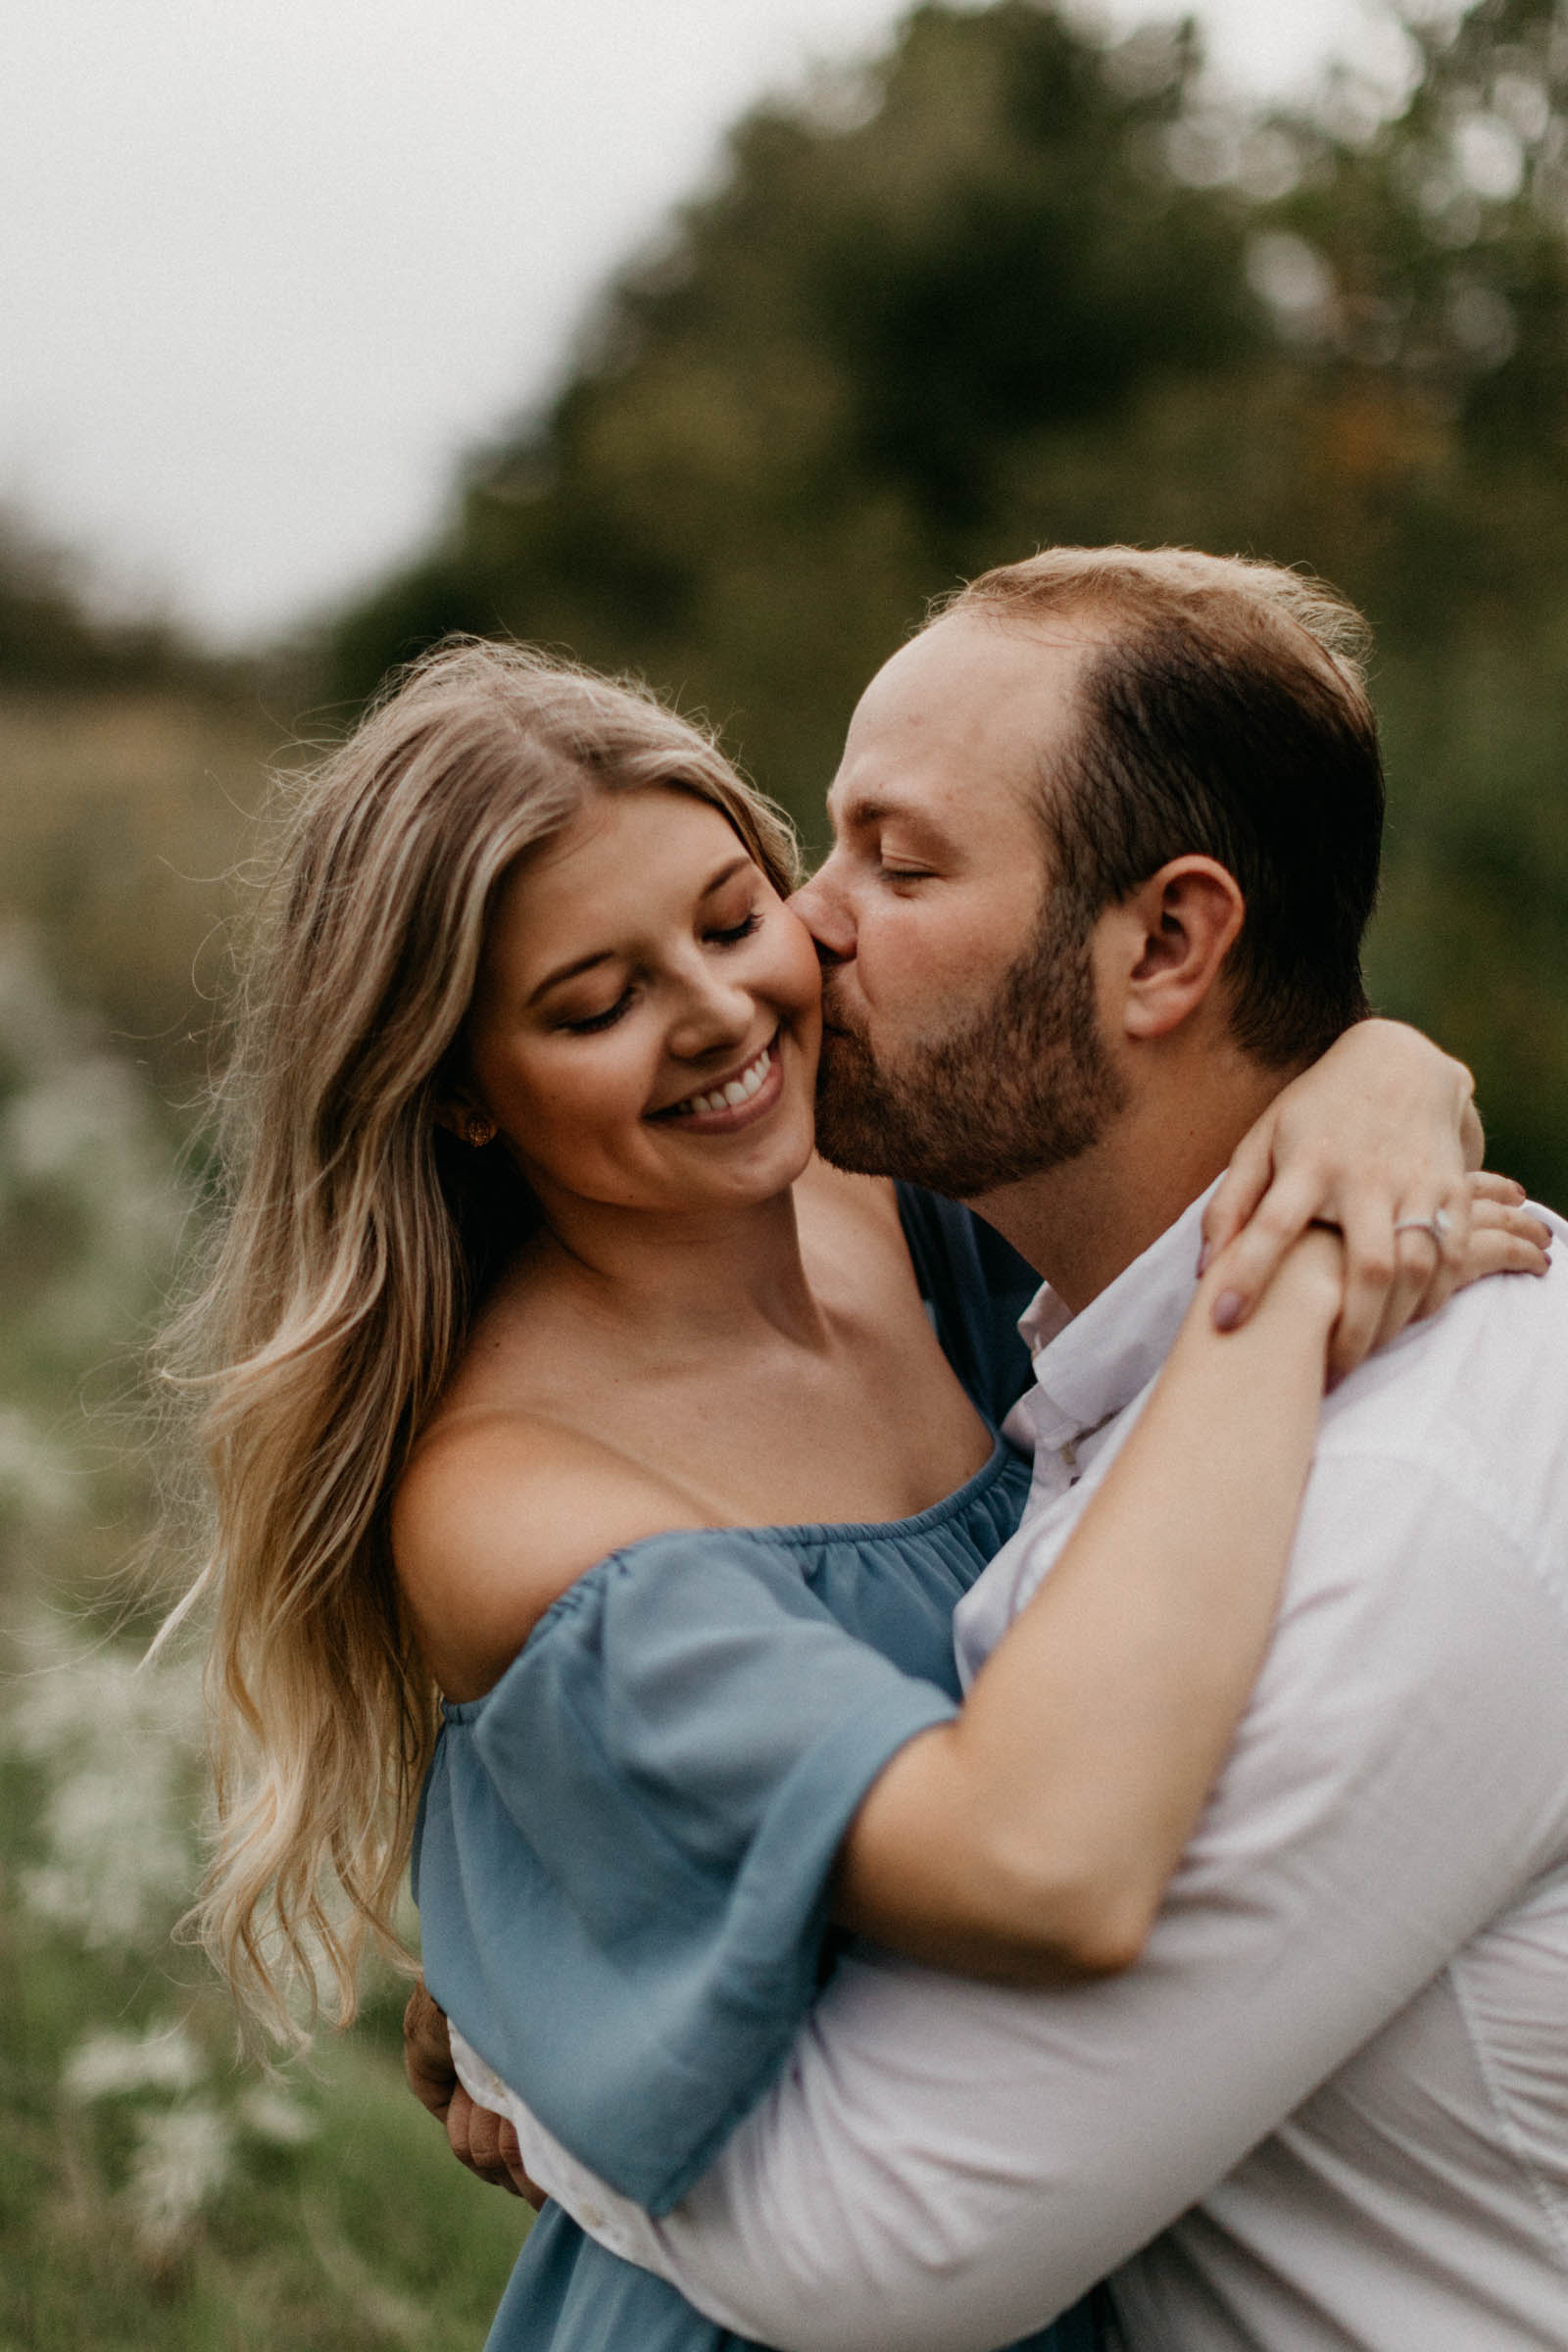 Boy kissing his fiancé on the cheek during their photography session